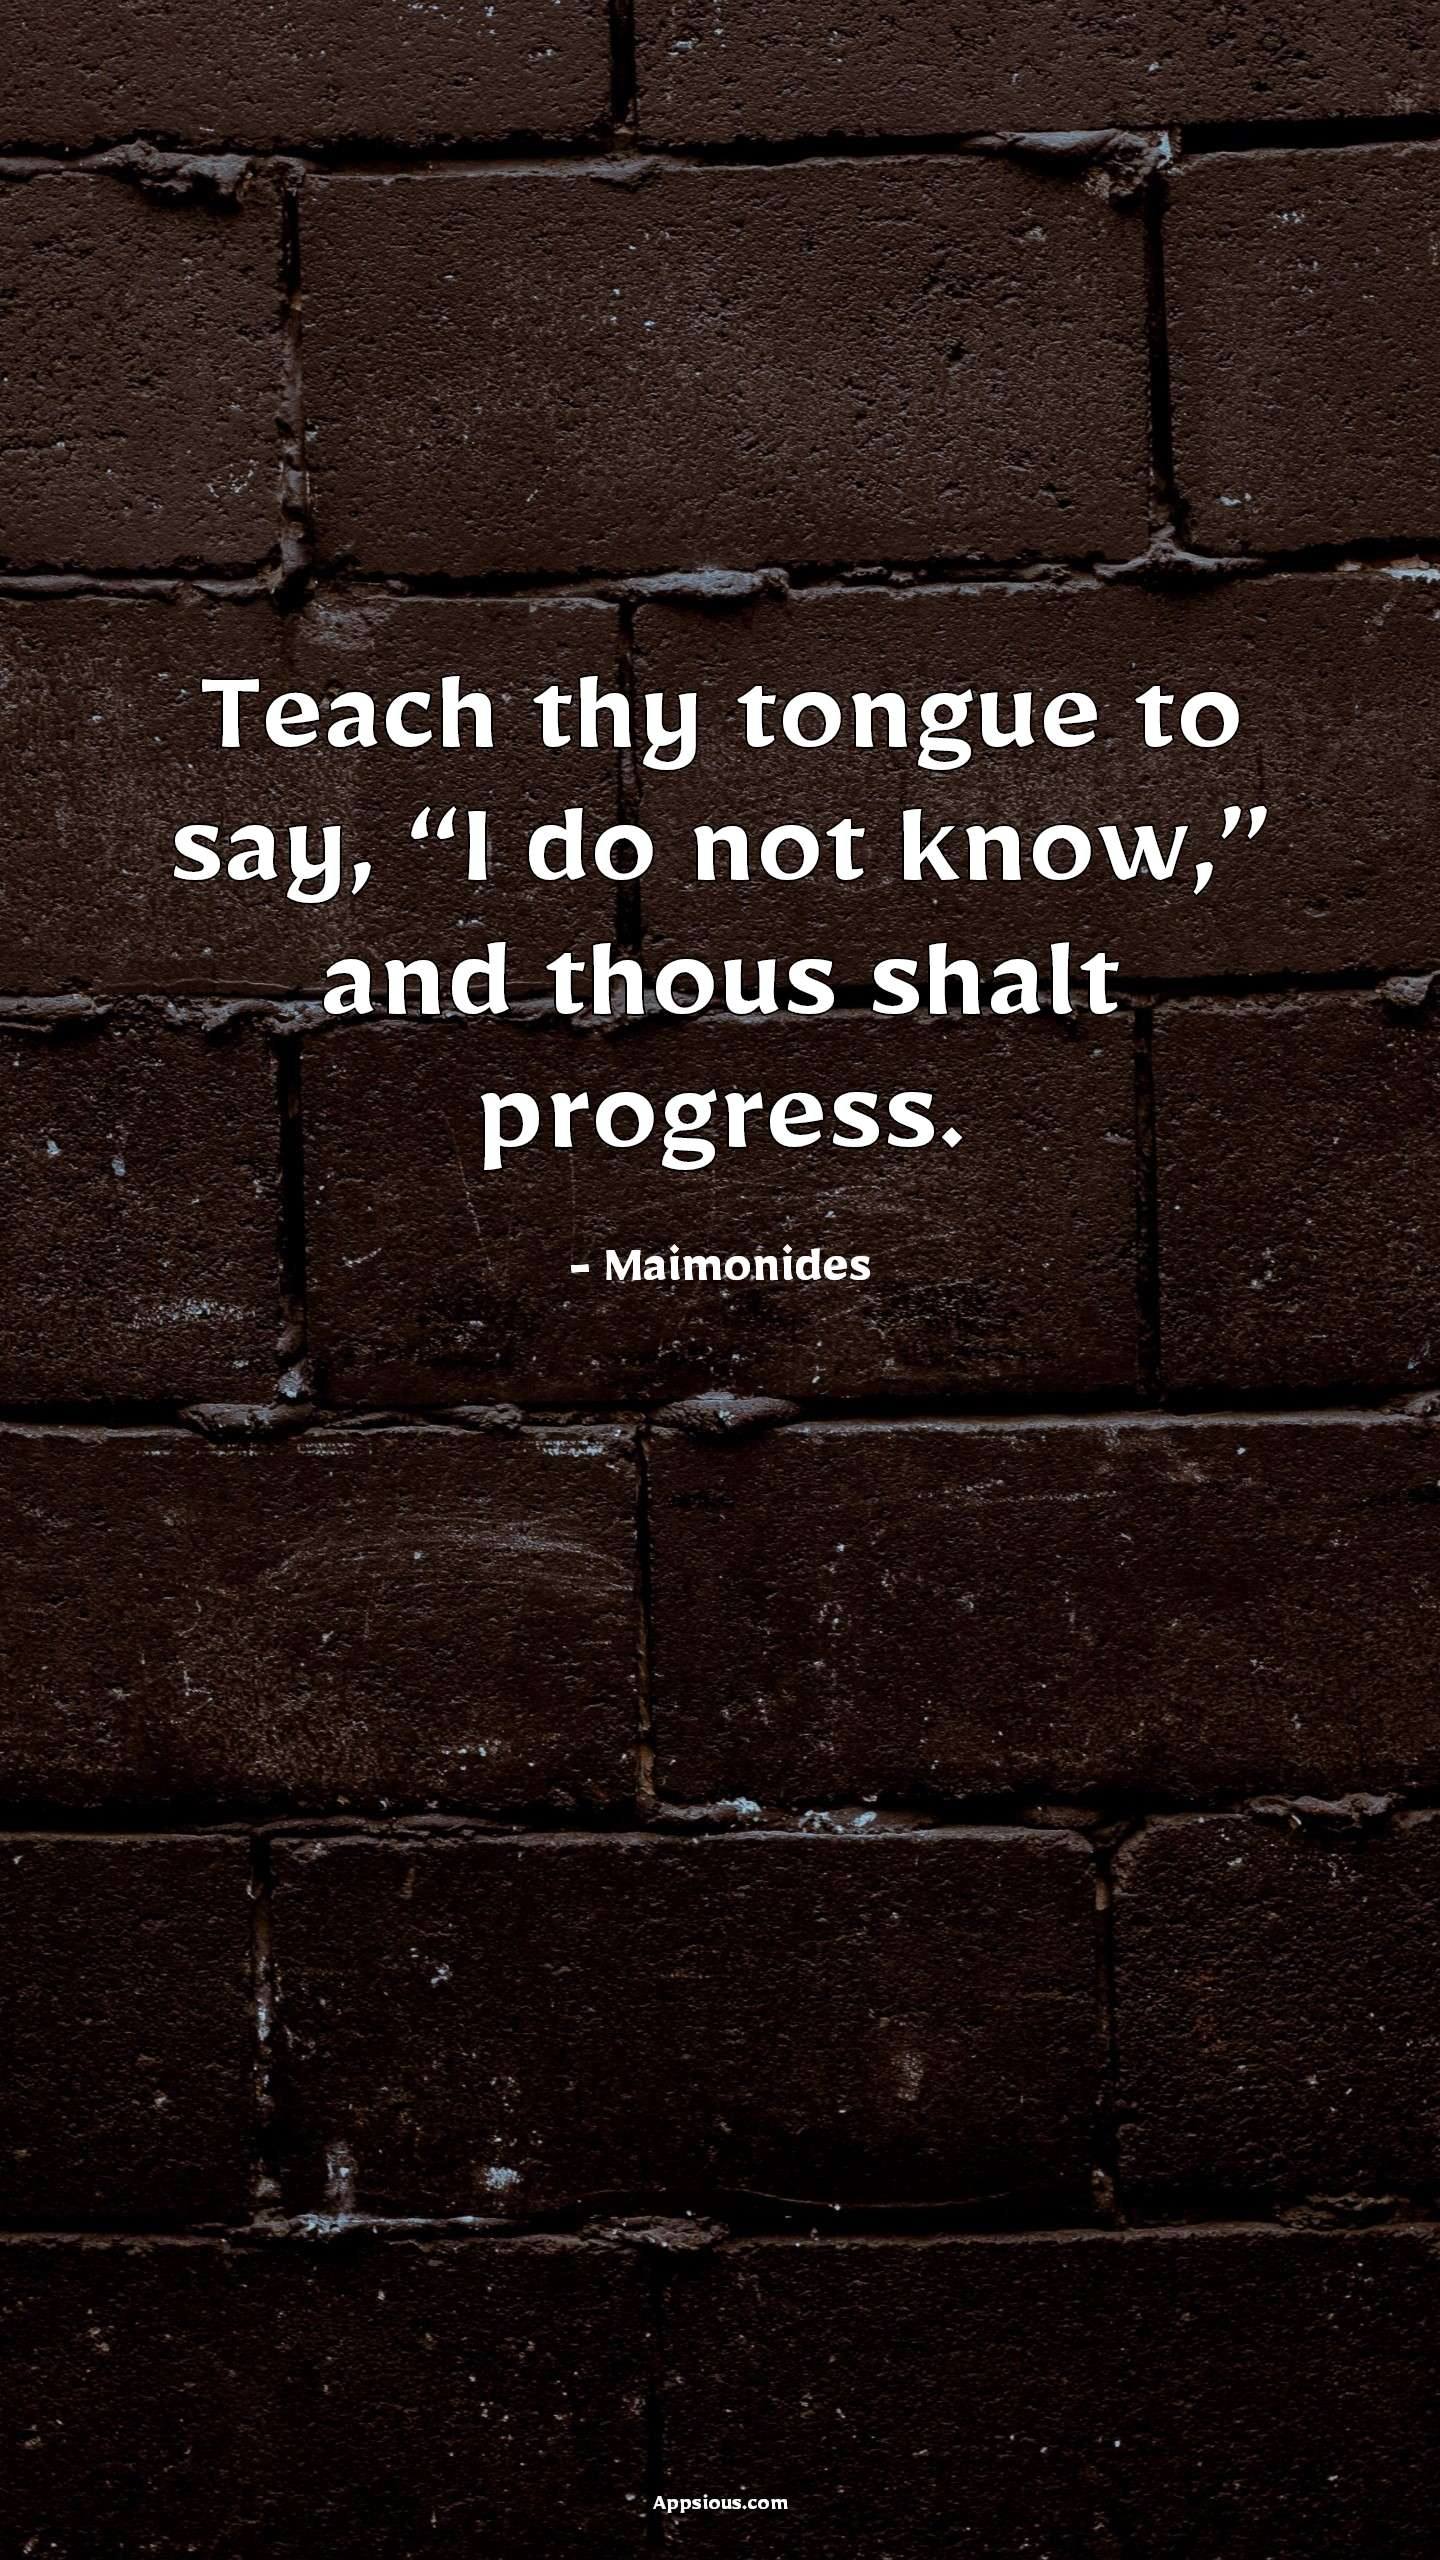 """Teach thy tongue to say, """"I do not know,"""" and thous shalt progress."""